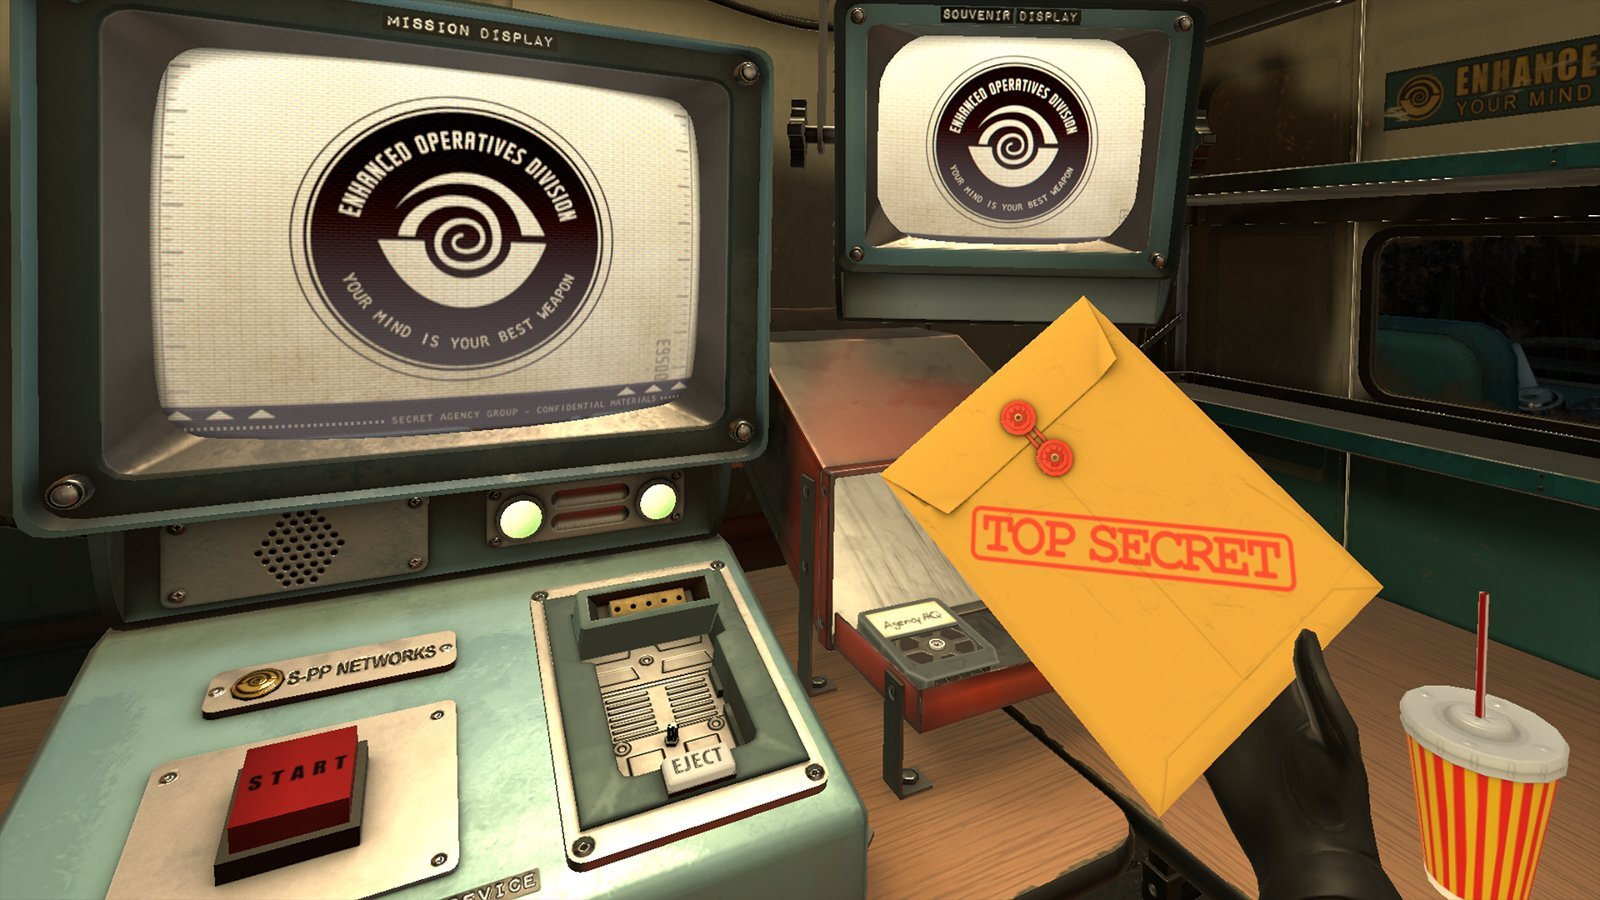 screenshot of game with manila envelope next to old fashioned tech